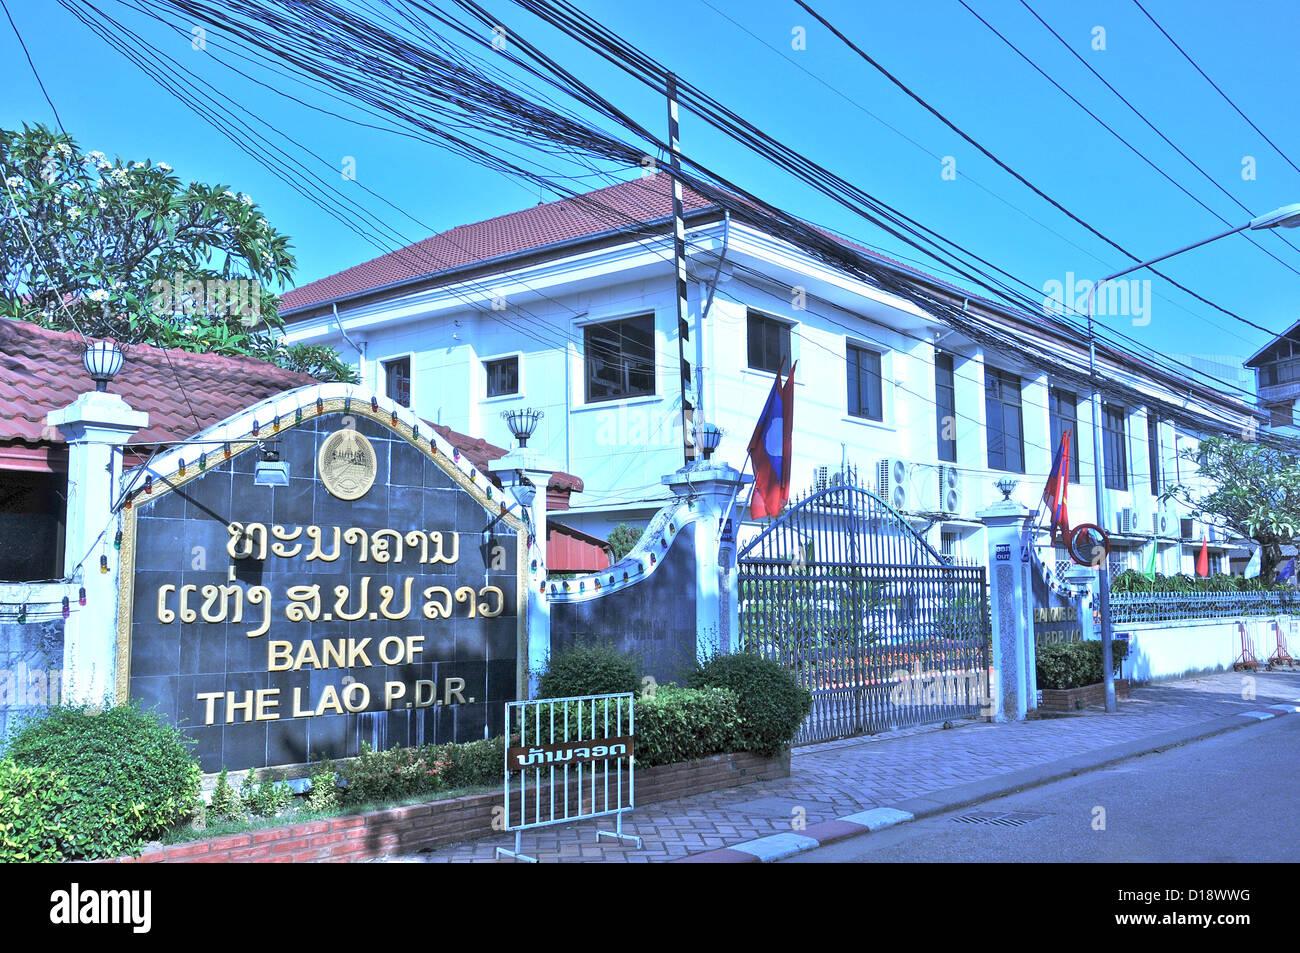 Bank of the Lao PDR Vientiane Laos - Stock Image